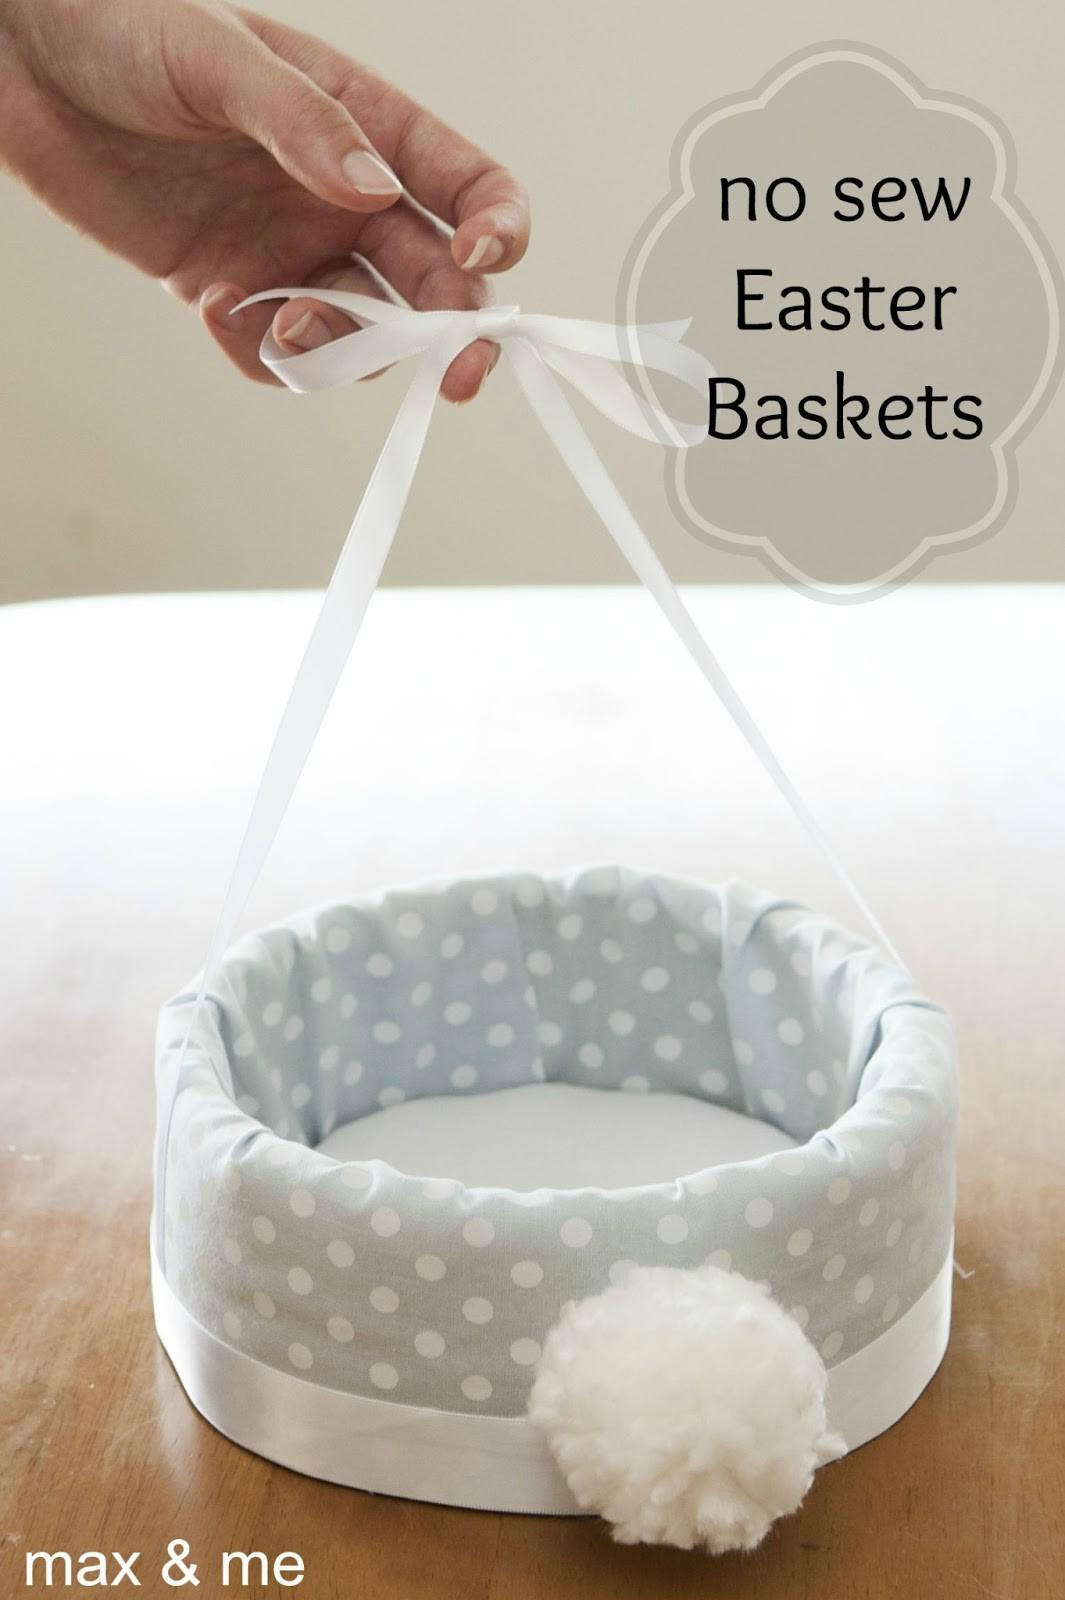 Max Sew Easter Baskets